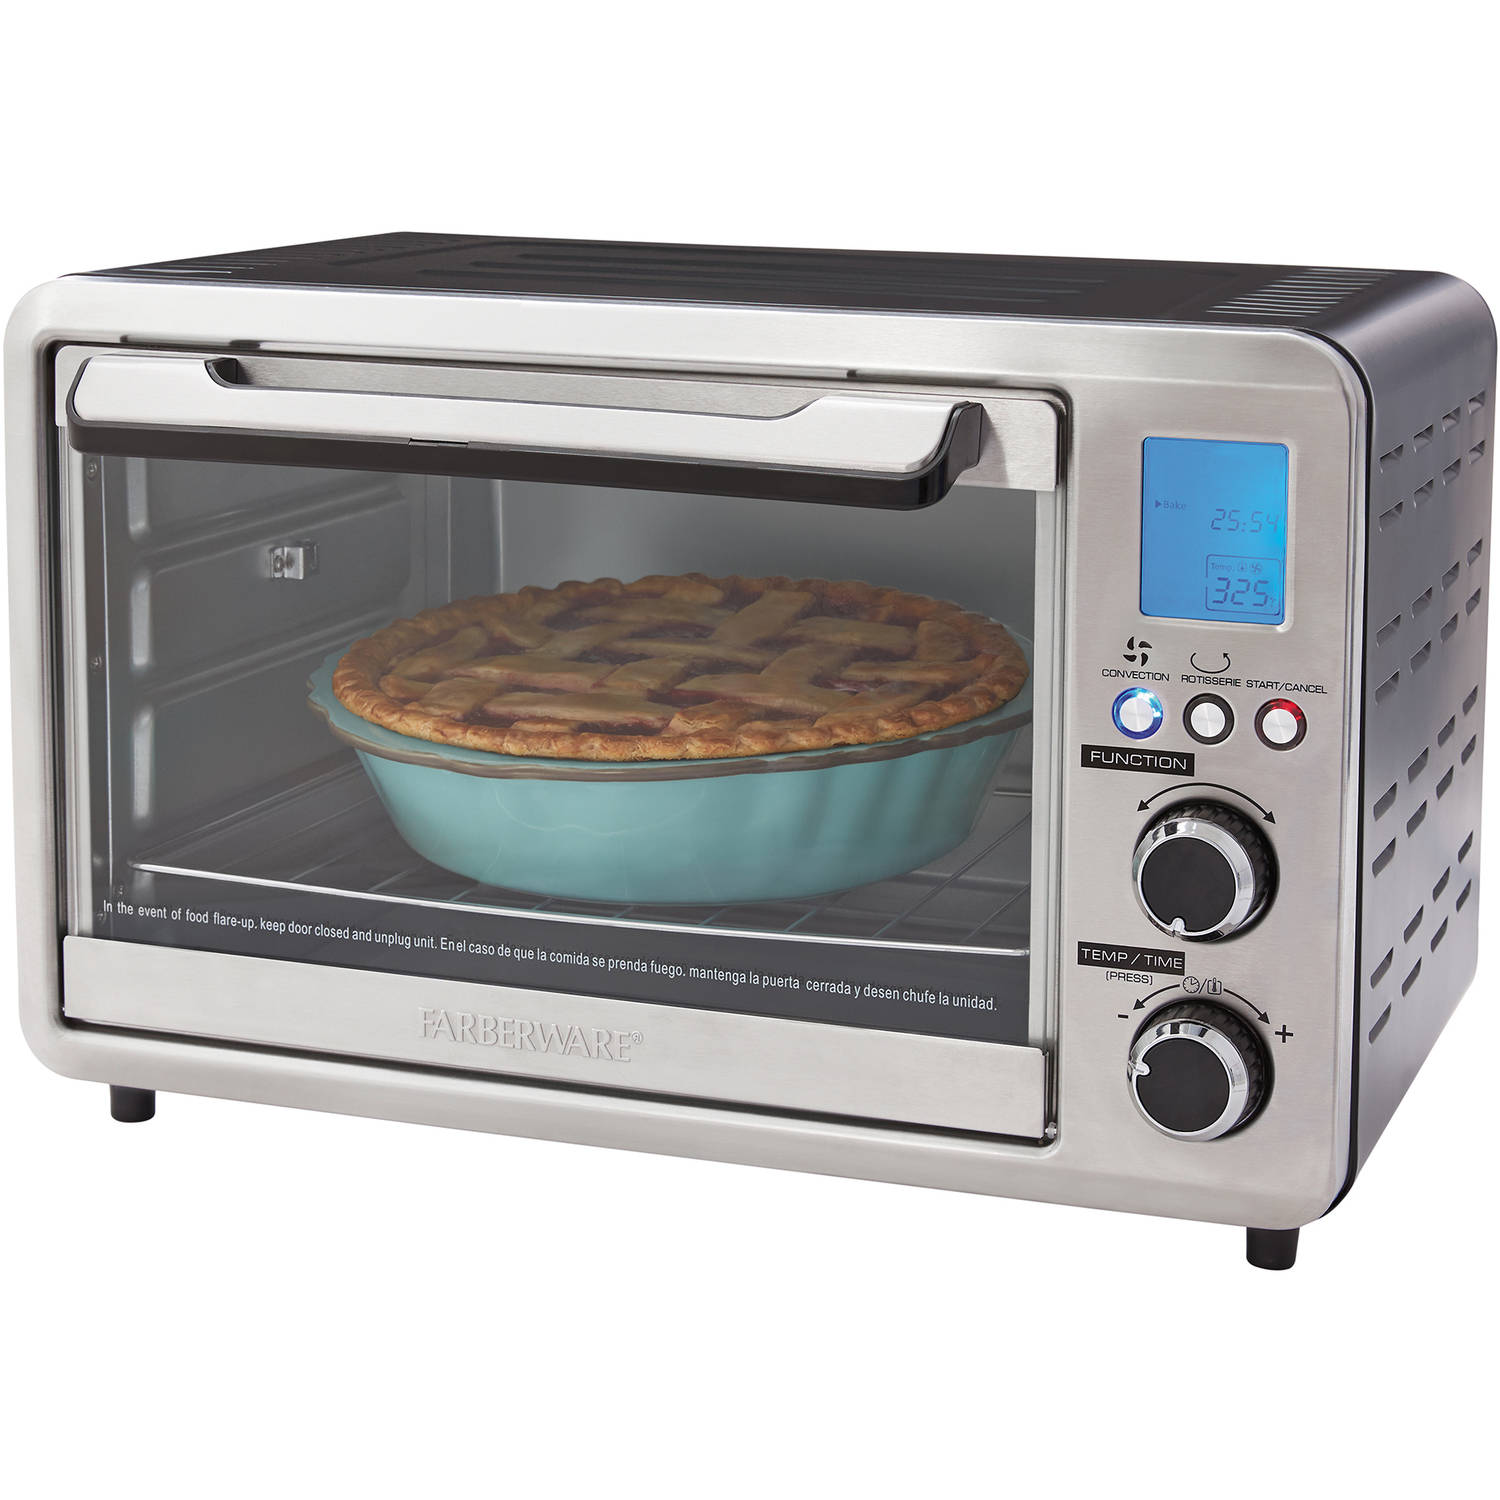 hight resolution of farberware digital toaster oven walmart com wiring diagram for defrost timer also toaster oven switch diagram as